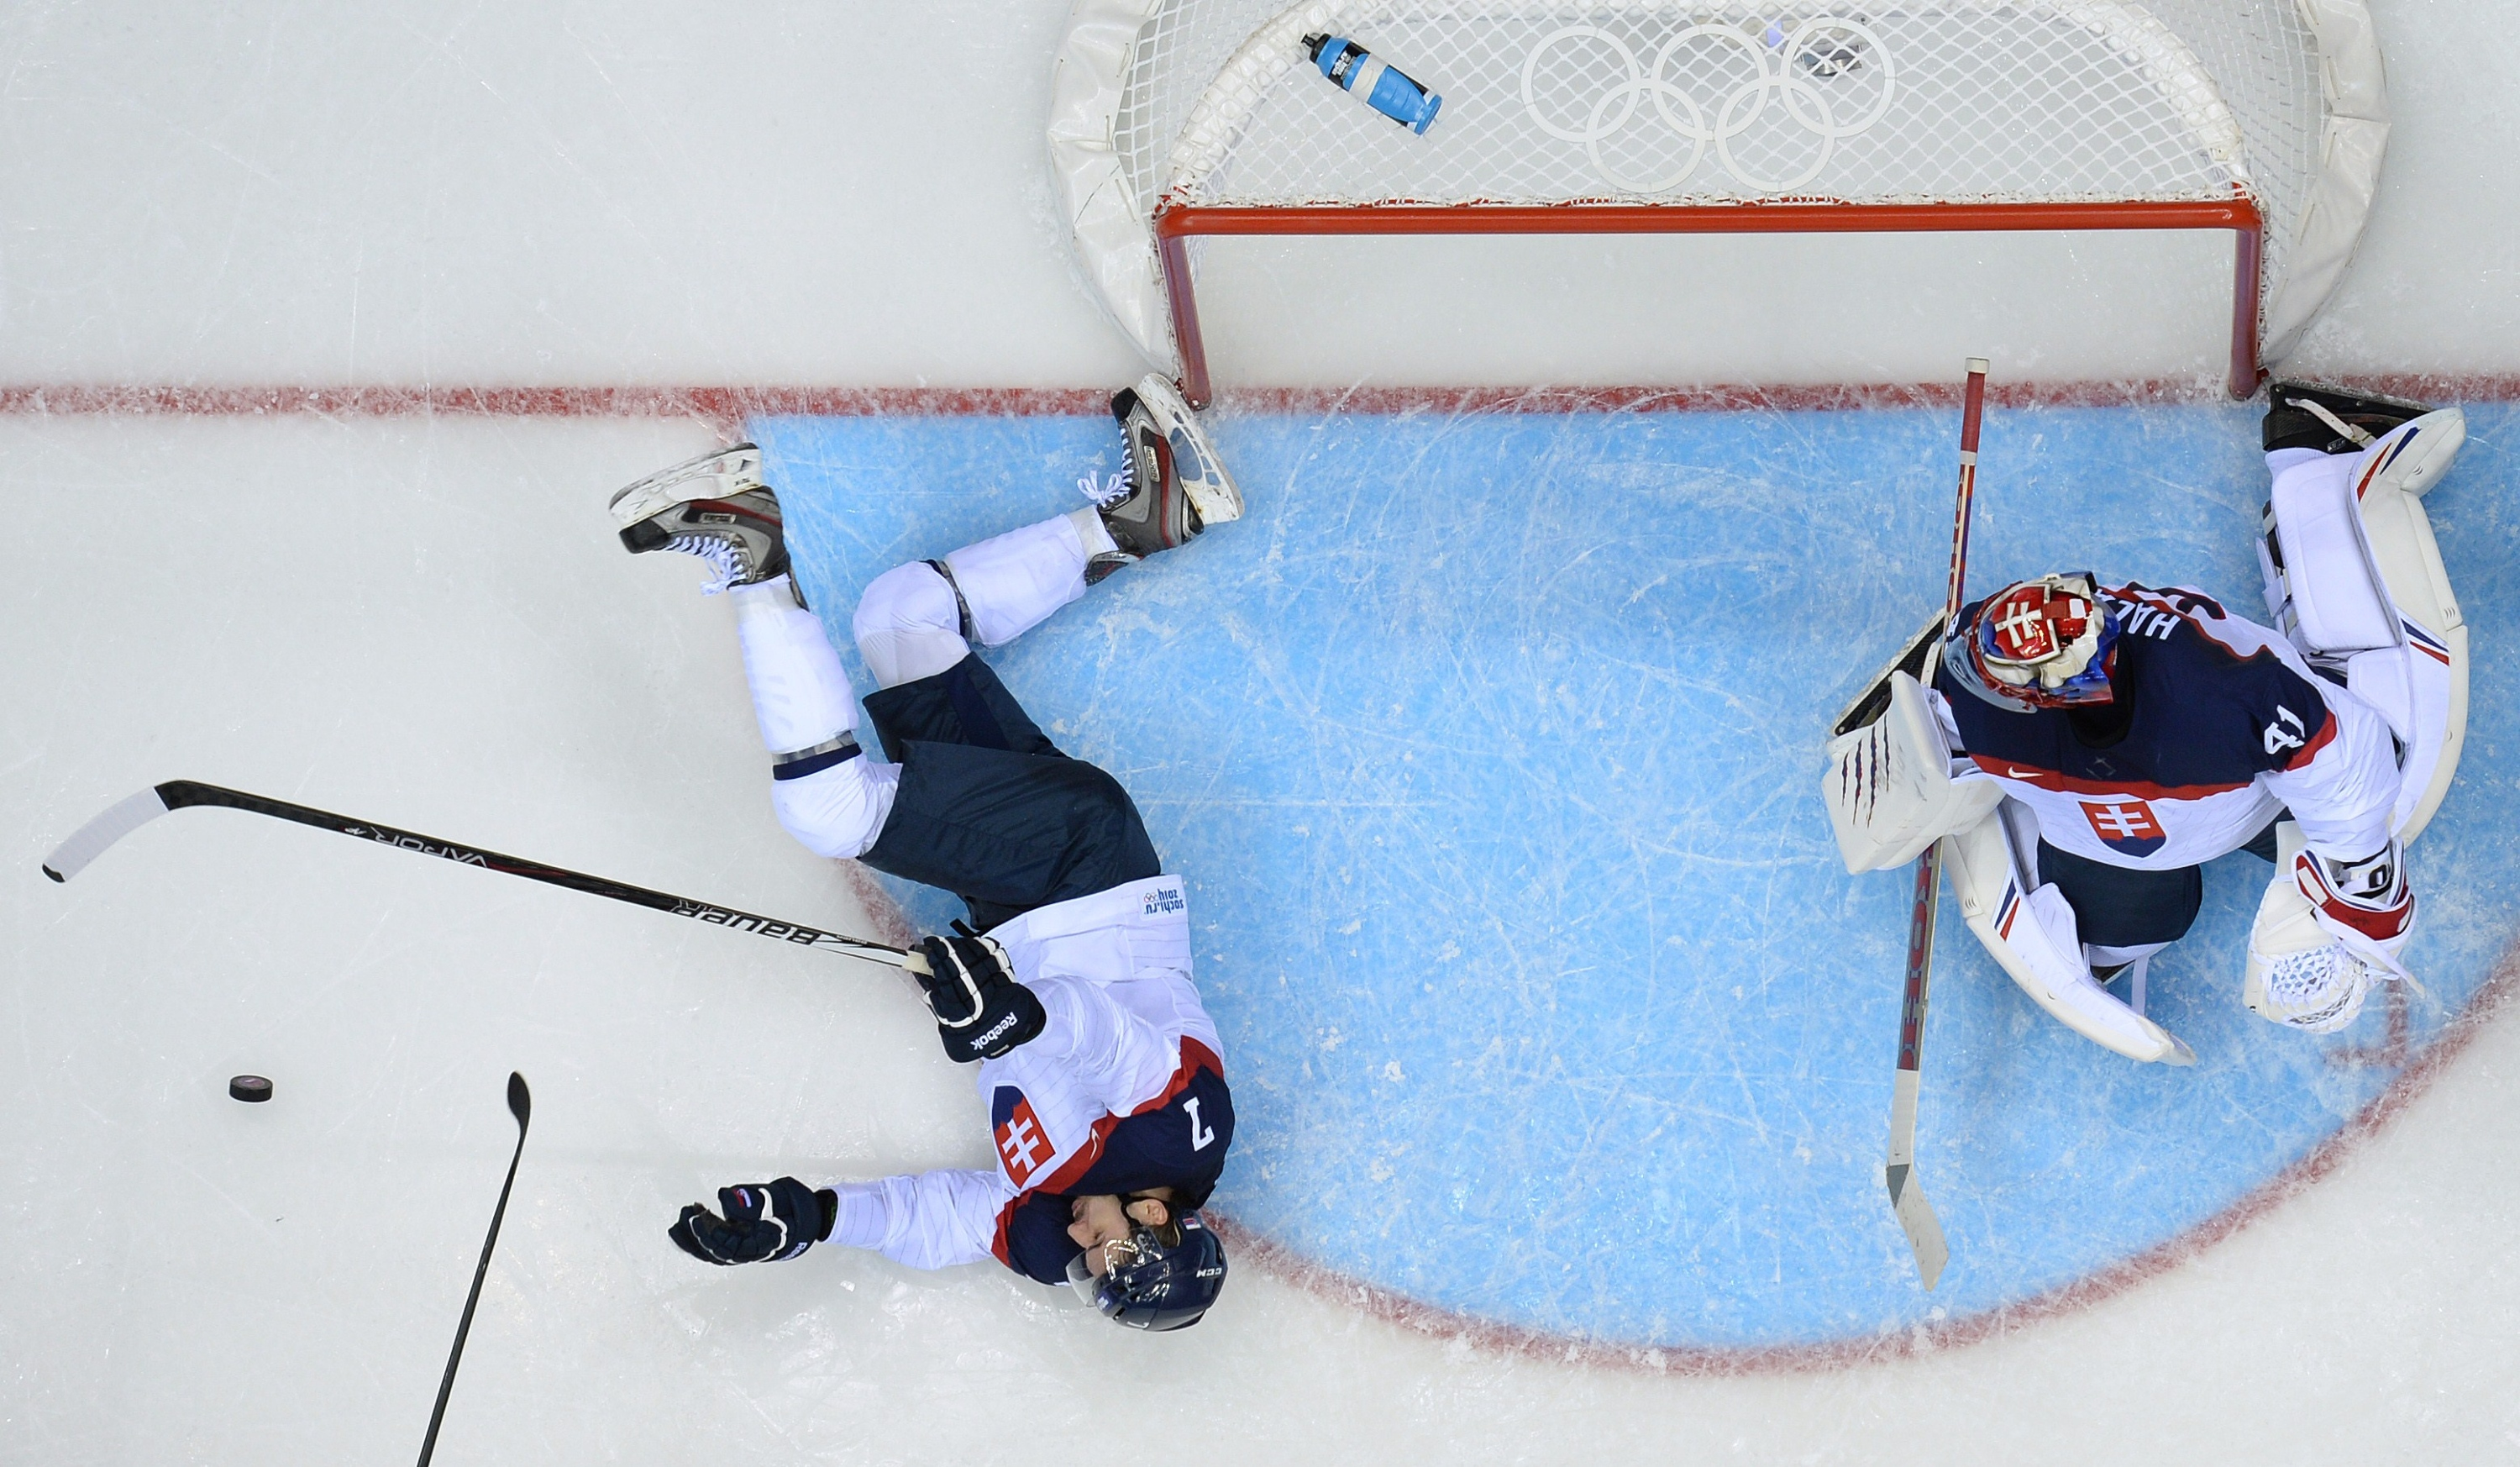 The crashes, falls, spills and tumbles of the Sochi Olympics